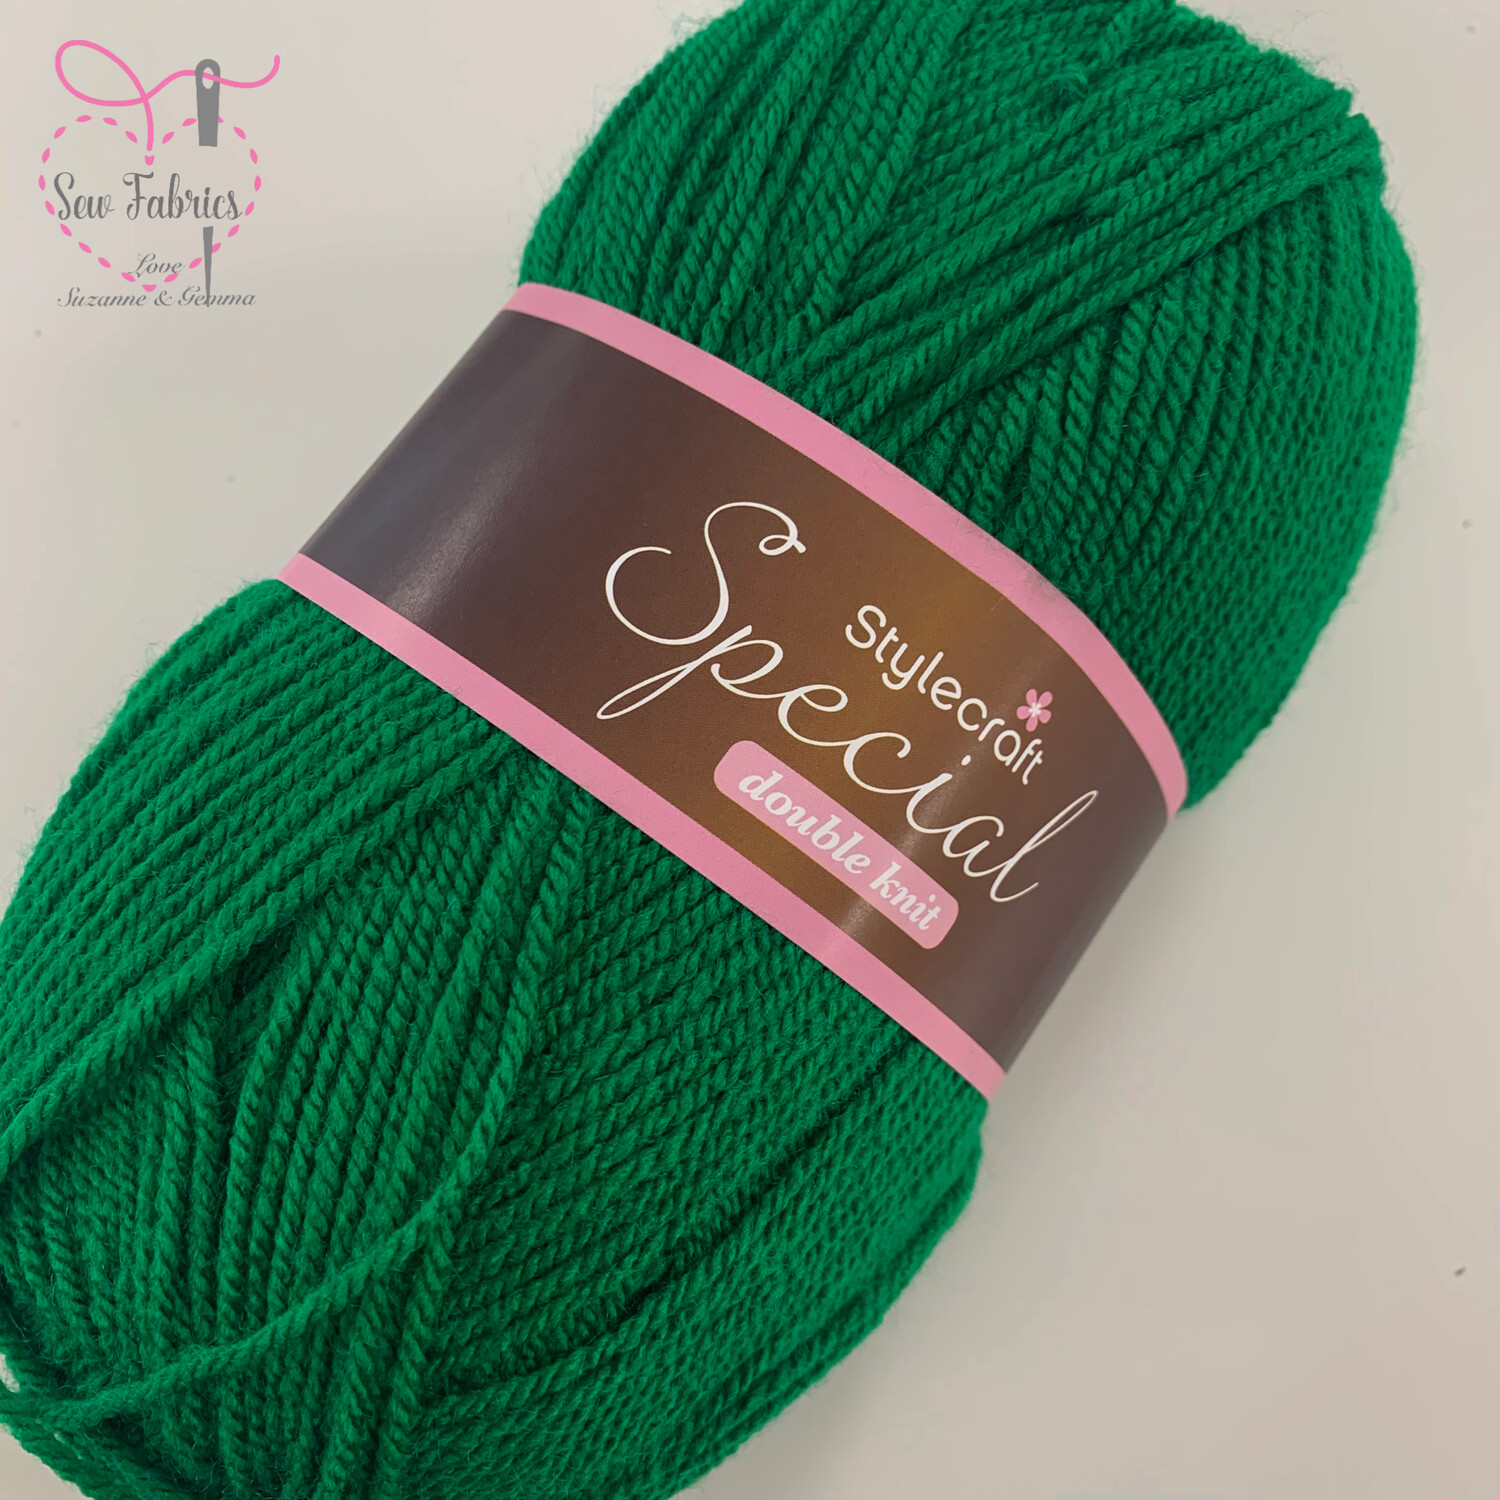 Stylecraft Special DK 100% Premium Acrylic Wool - Green  Buy More Than 1 Ball & Get 30% Off With Code STYLE30